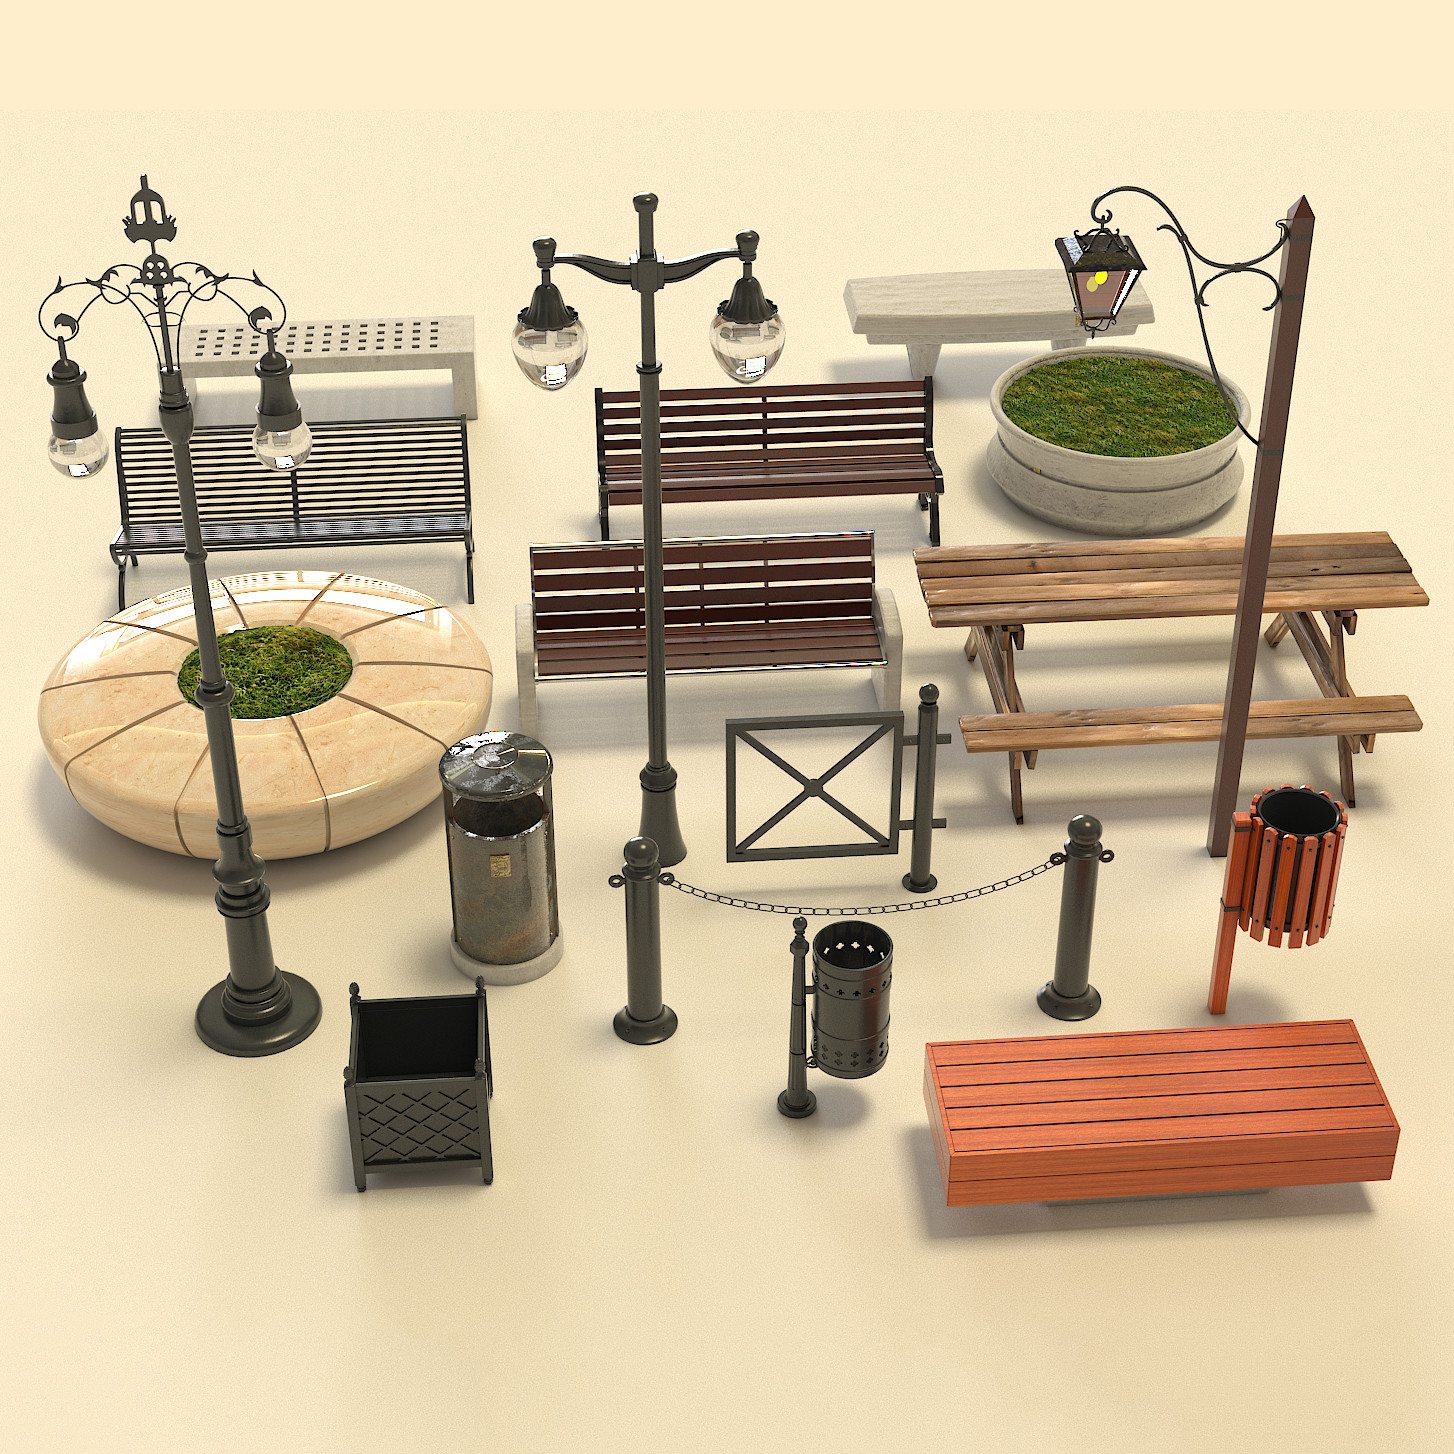 3D street furniture packed